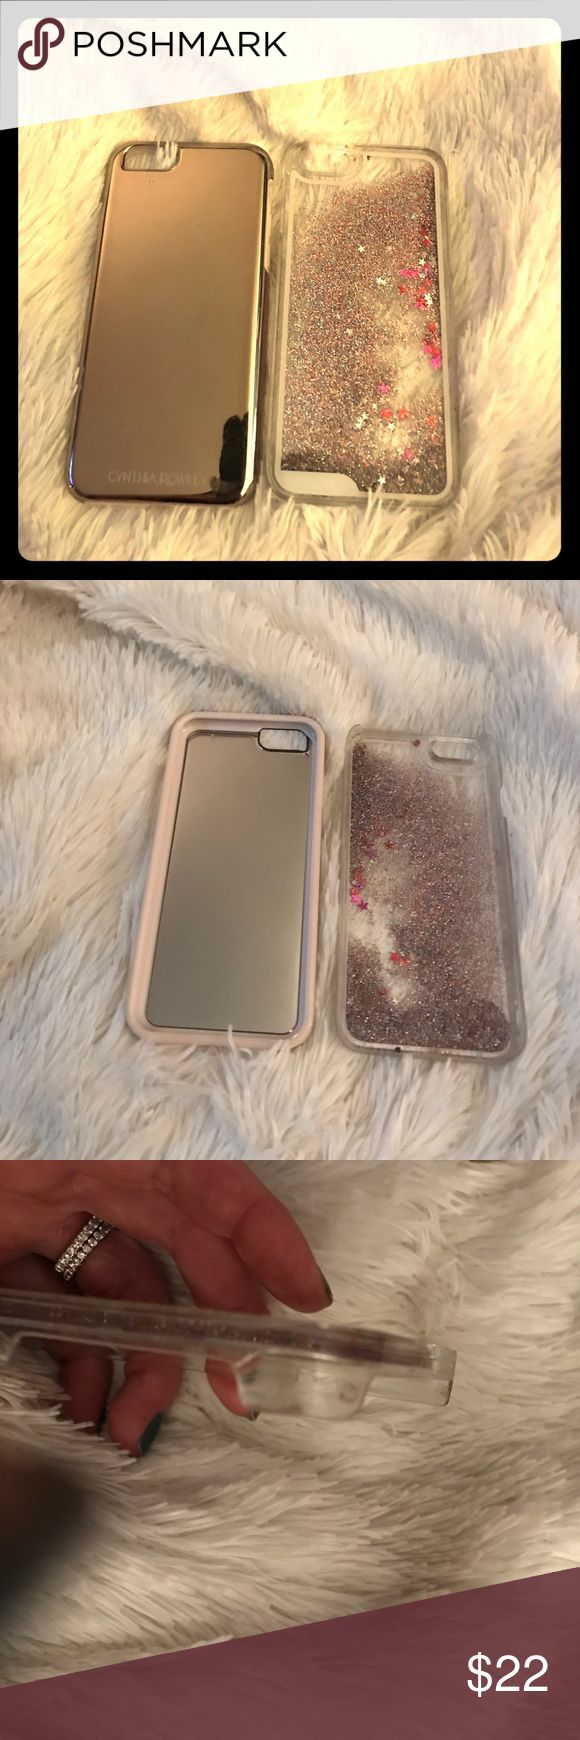 iPhone 6s covers 2 iPhone 6s 📱 🔥 awesomely rose 🌹 gold mirrored hard case with soft light pink bumper by Cynthia Rowley and iPhone store hard glitter and ⭐️ stars floating cases. Gorgeous as seen in pic one and two. Minor flaws that do not inhibit the safety or luster of either case as seen in 3and4. EUC so awesome m🔥💋❤️👱🏽♀️🌹👈🏼❣️no lowballs Accessories Phone Cases